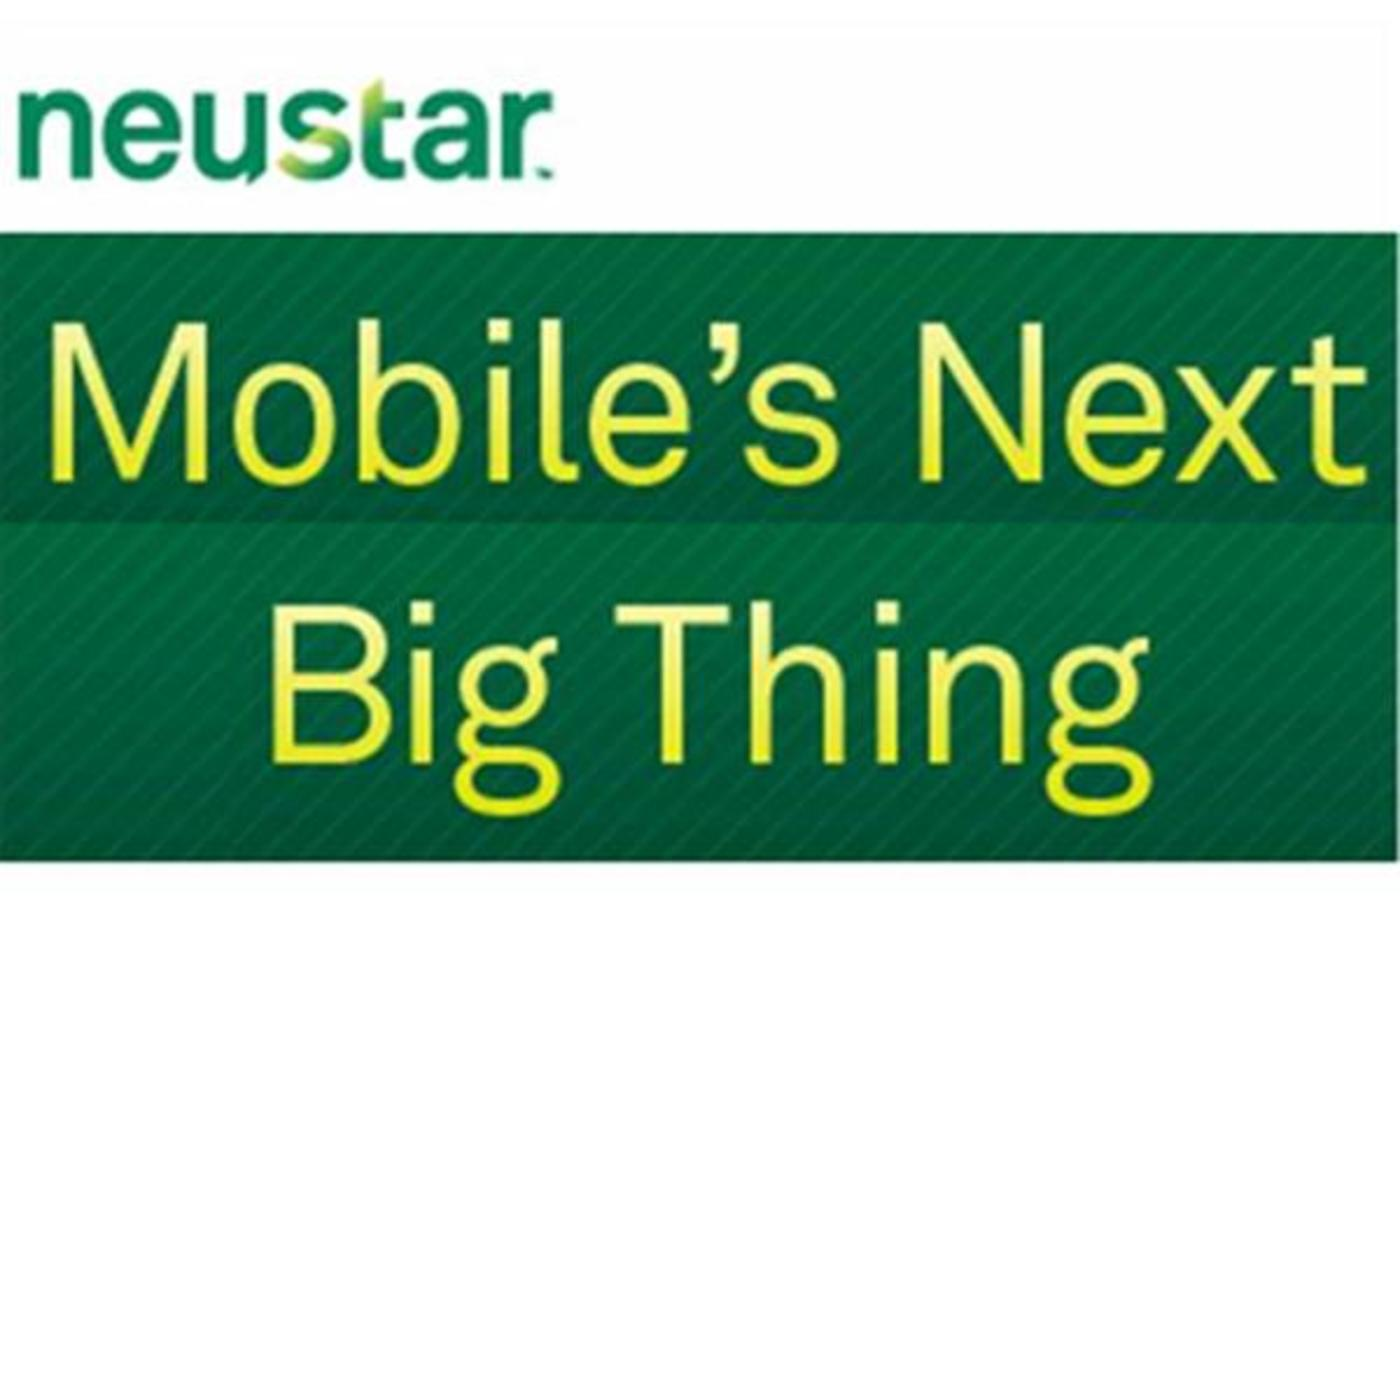 Mobile's Next Big Thing